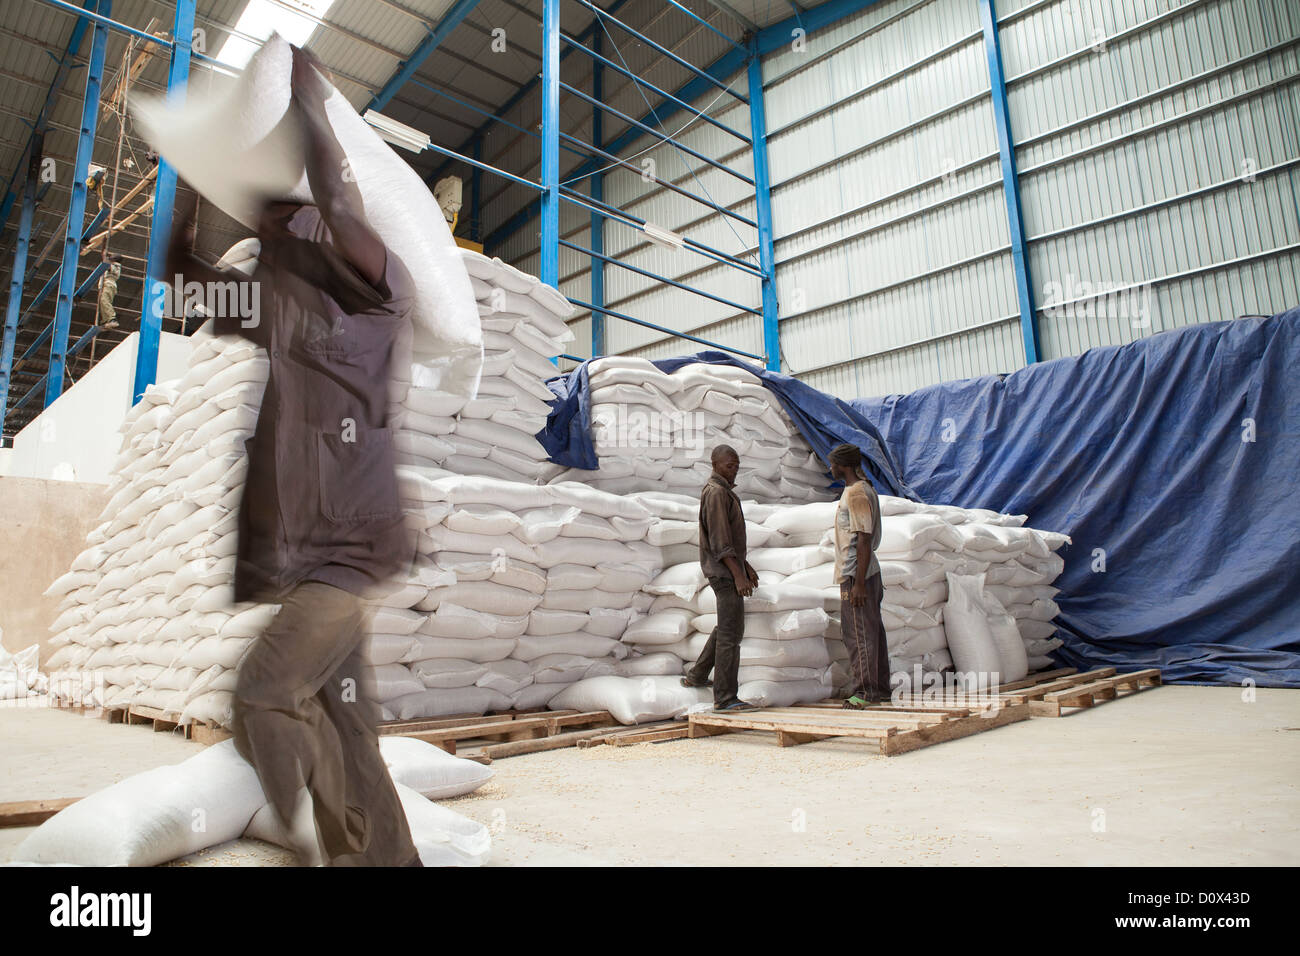 Workers load sacks of corn at a warehouse in Kampala, Uganda, East Africa. Stock Photo